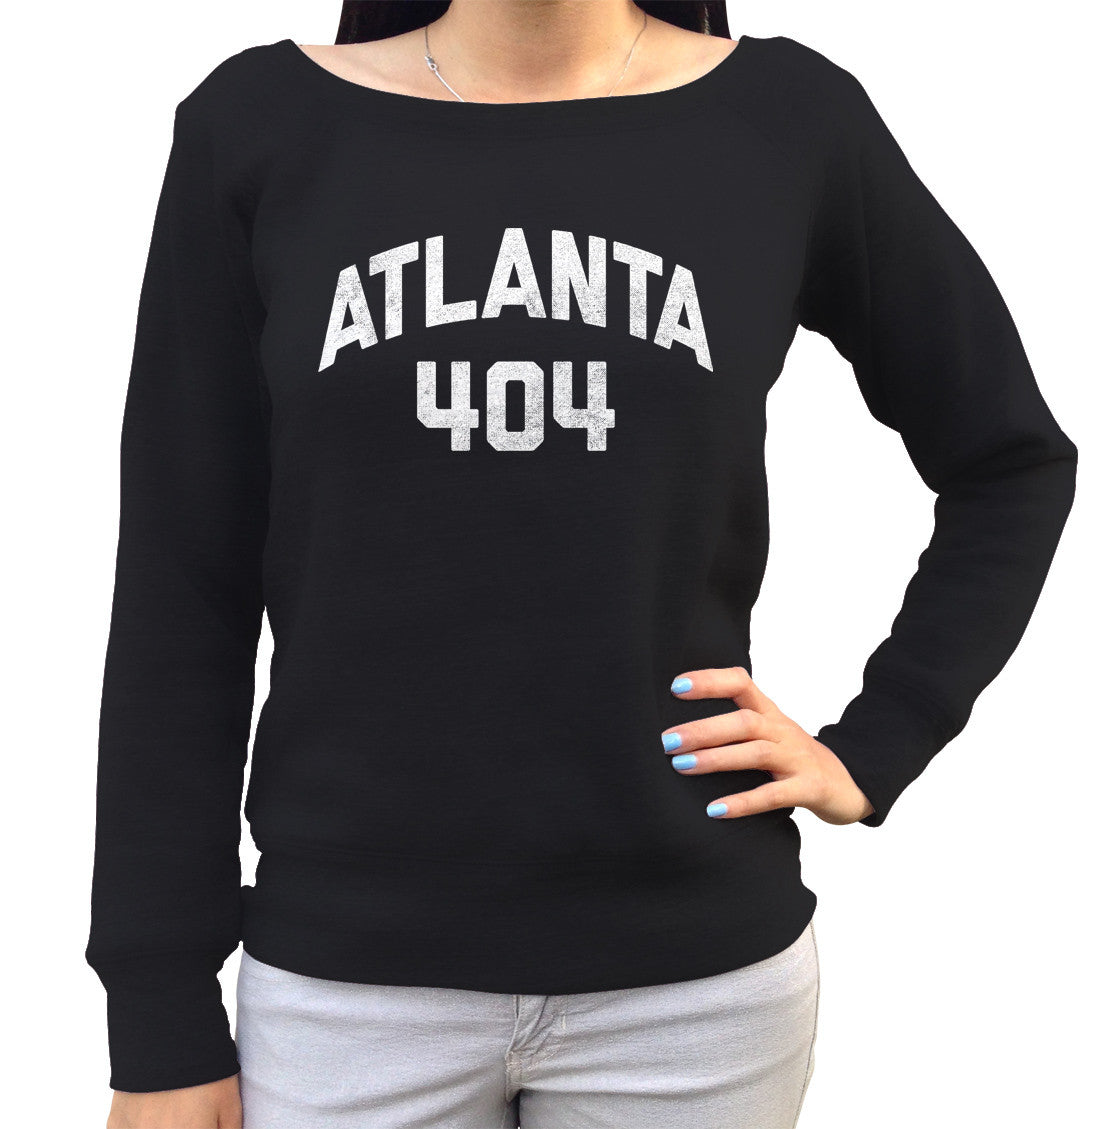 Women's Atlanta 404 Area Code Scoop Neck Fleece